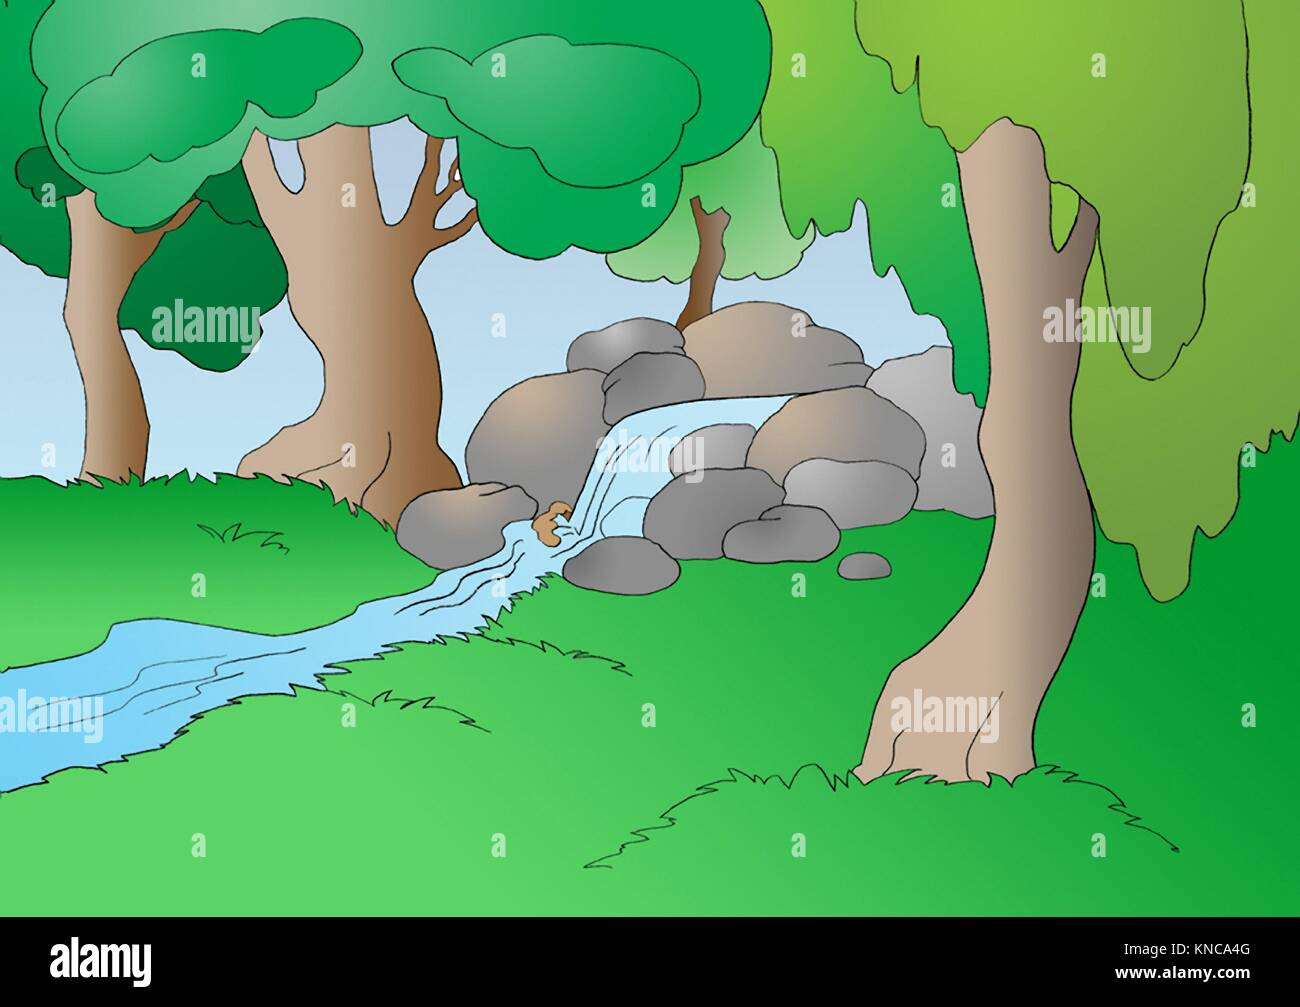 Creek in the Forest in a Summer Day. Digital Painting Background, Illustration in primitive cartoon style character. - Stock Image